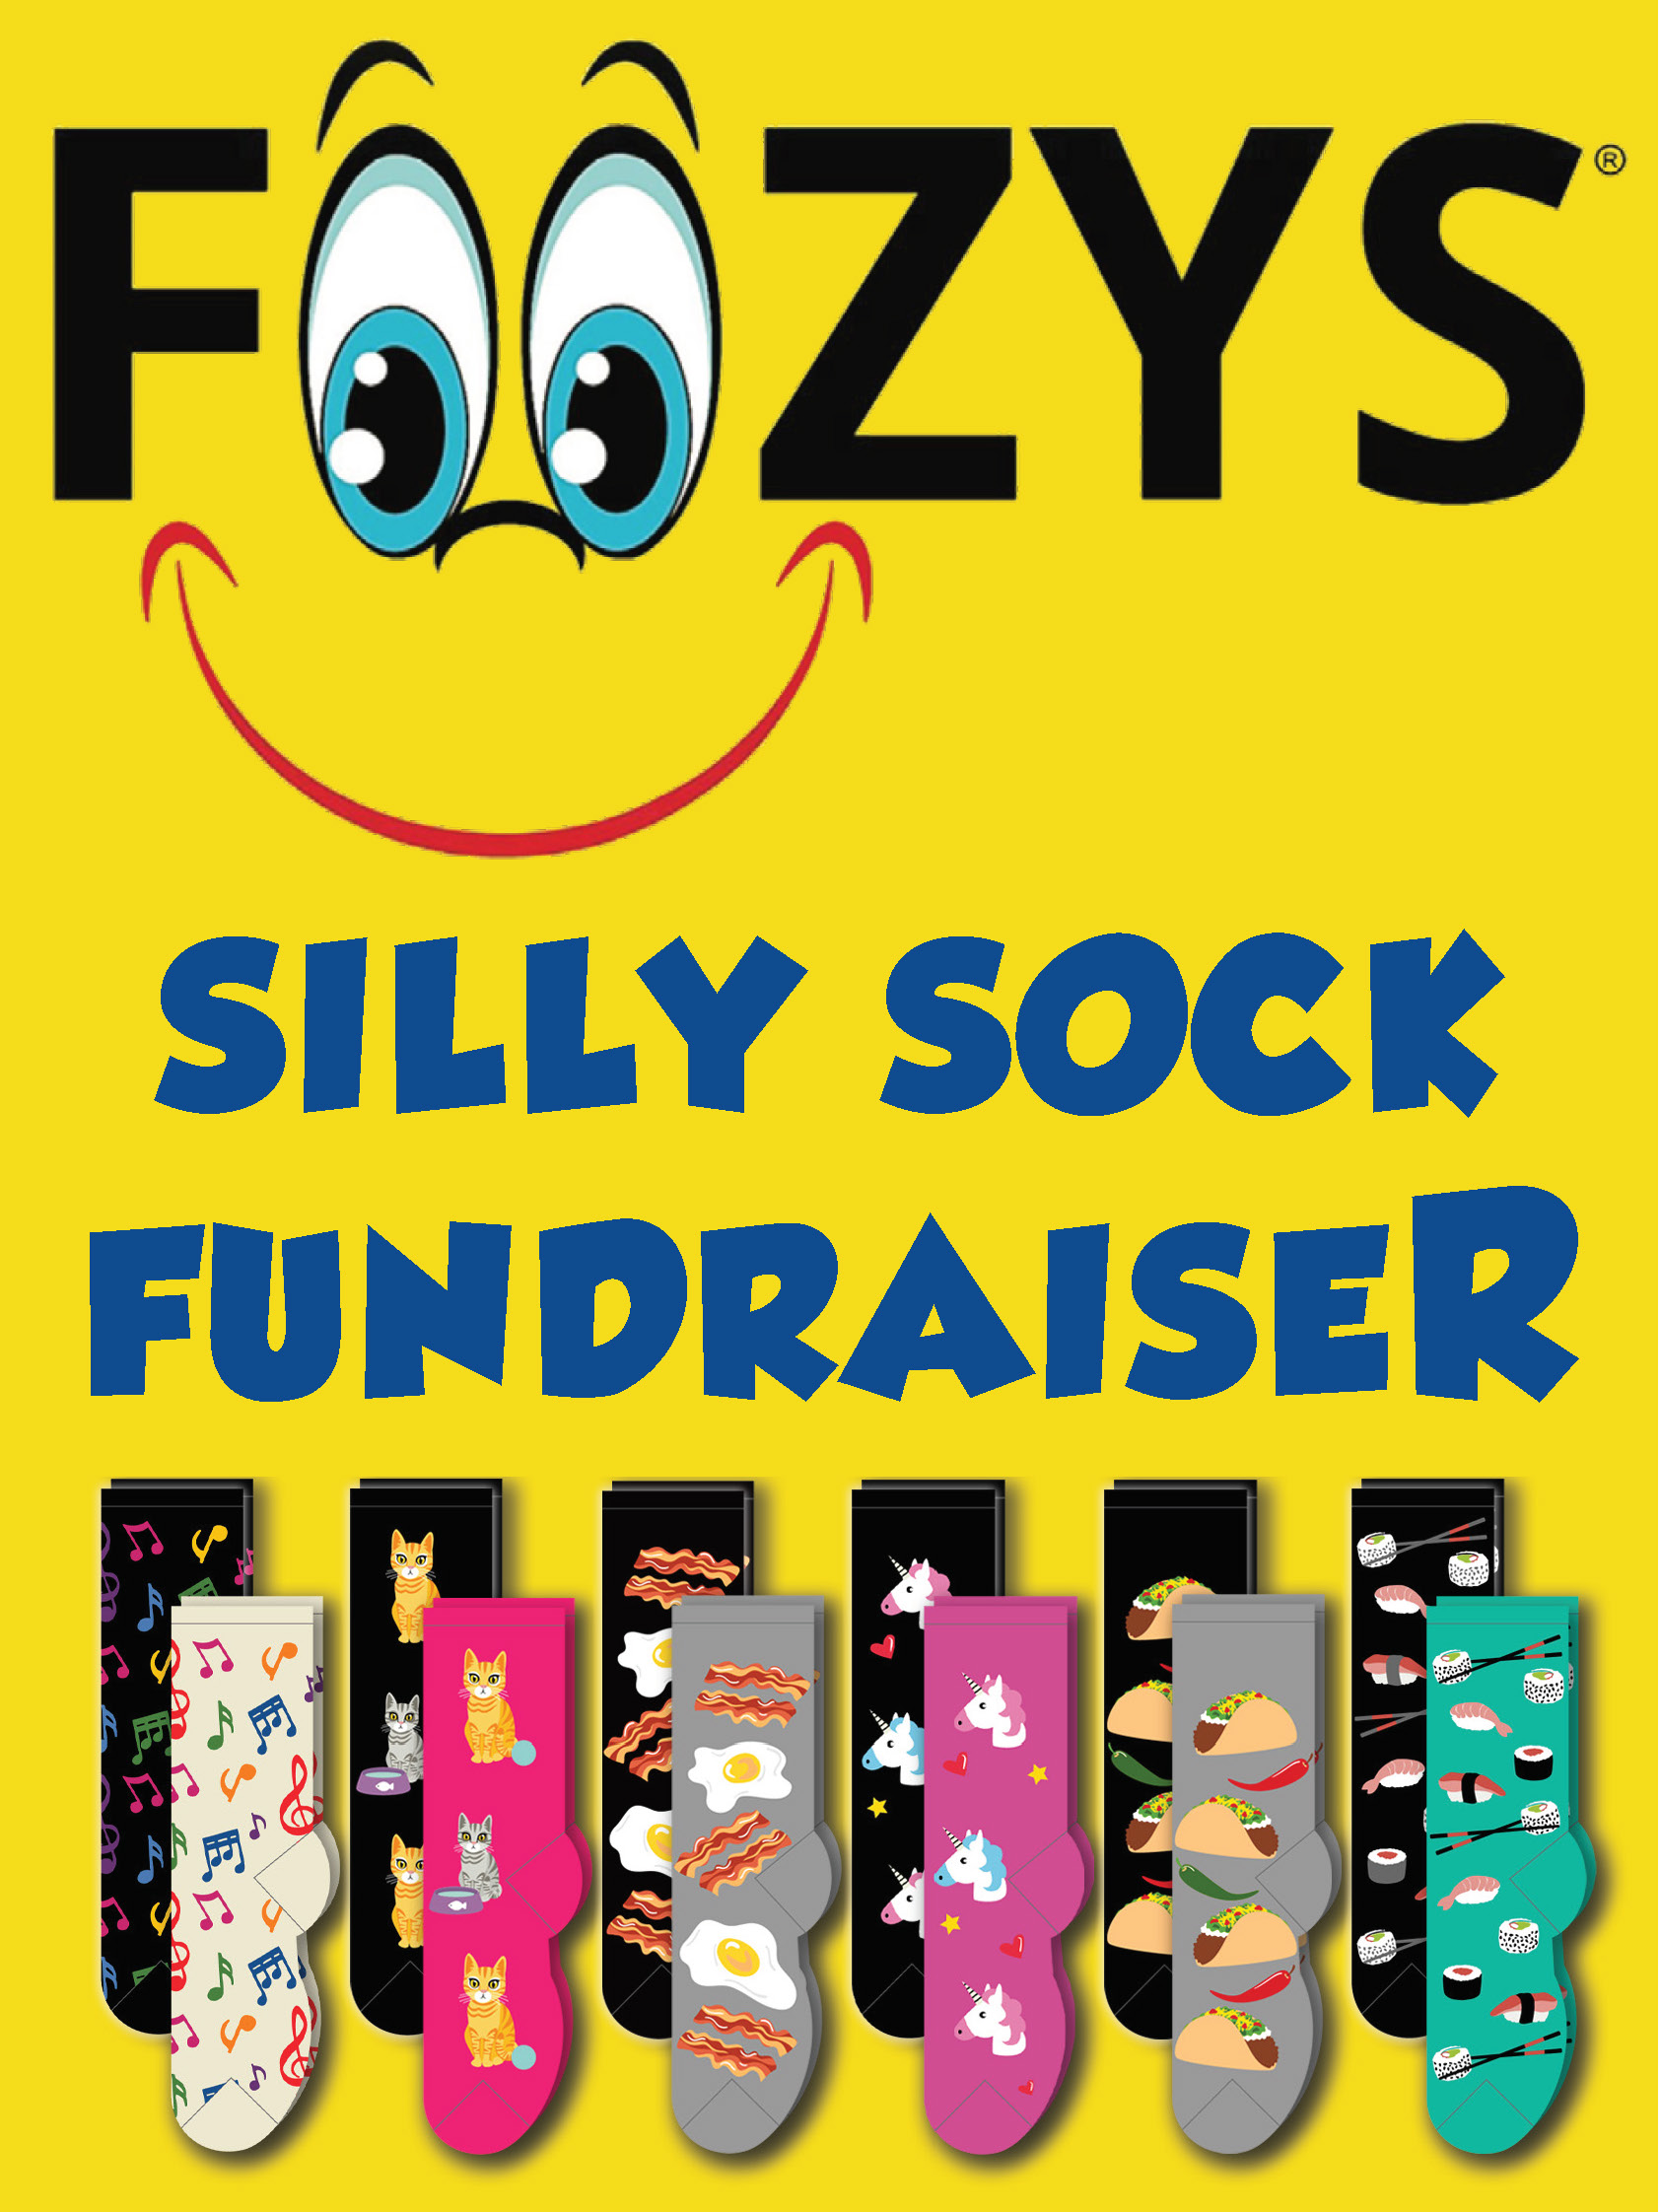 Foozys Sill Sock Fundraiser With 12 Pair Assortment